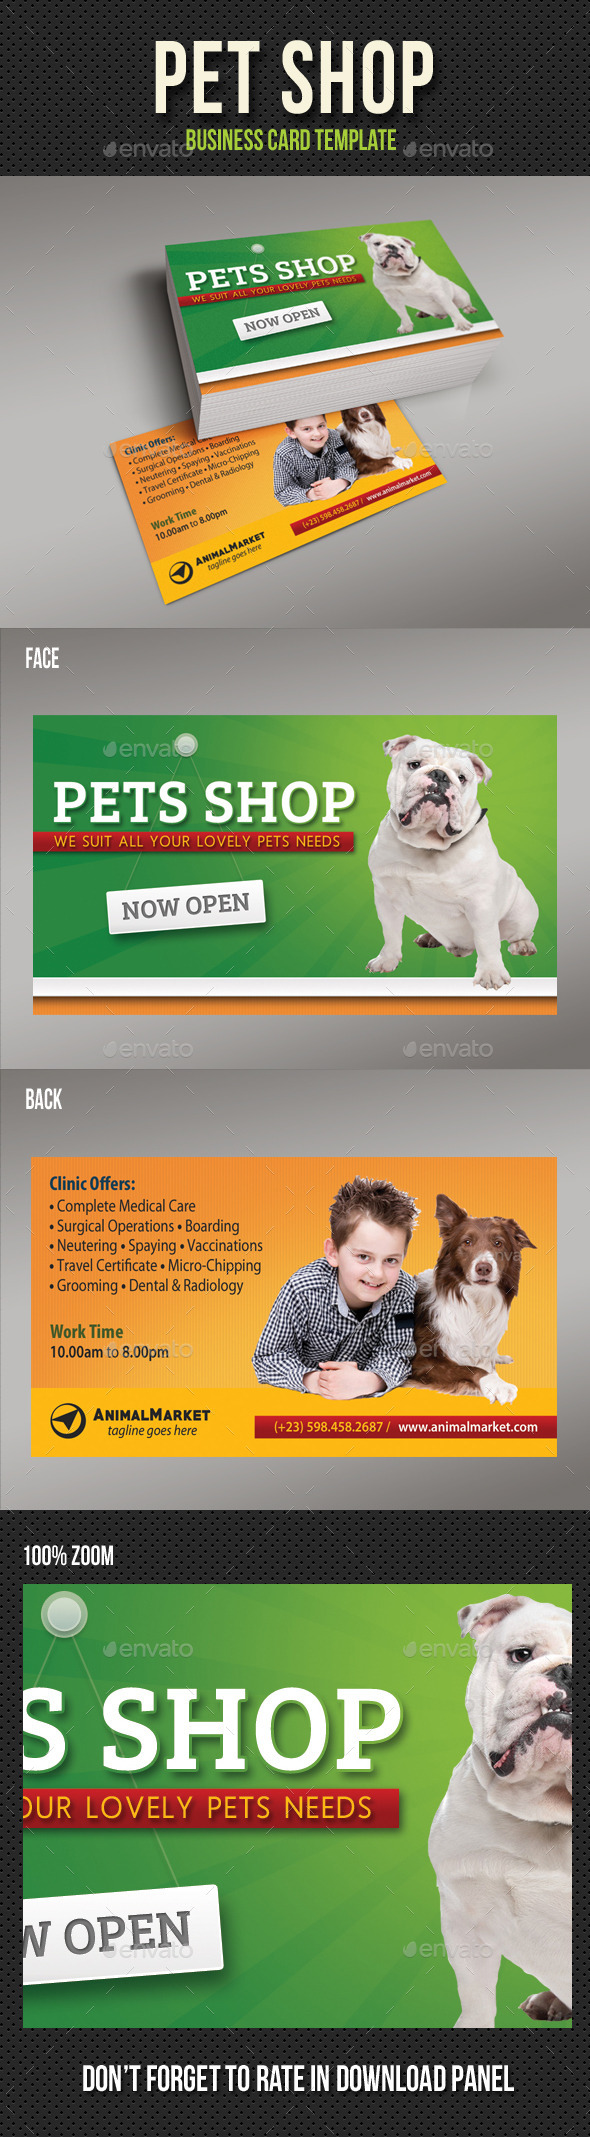 Pet Shop Business Card - Creative Business Cards